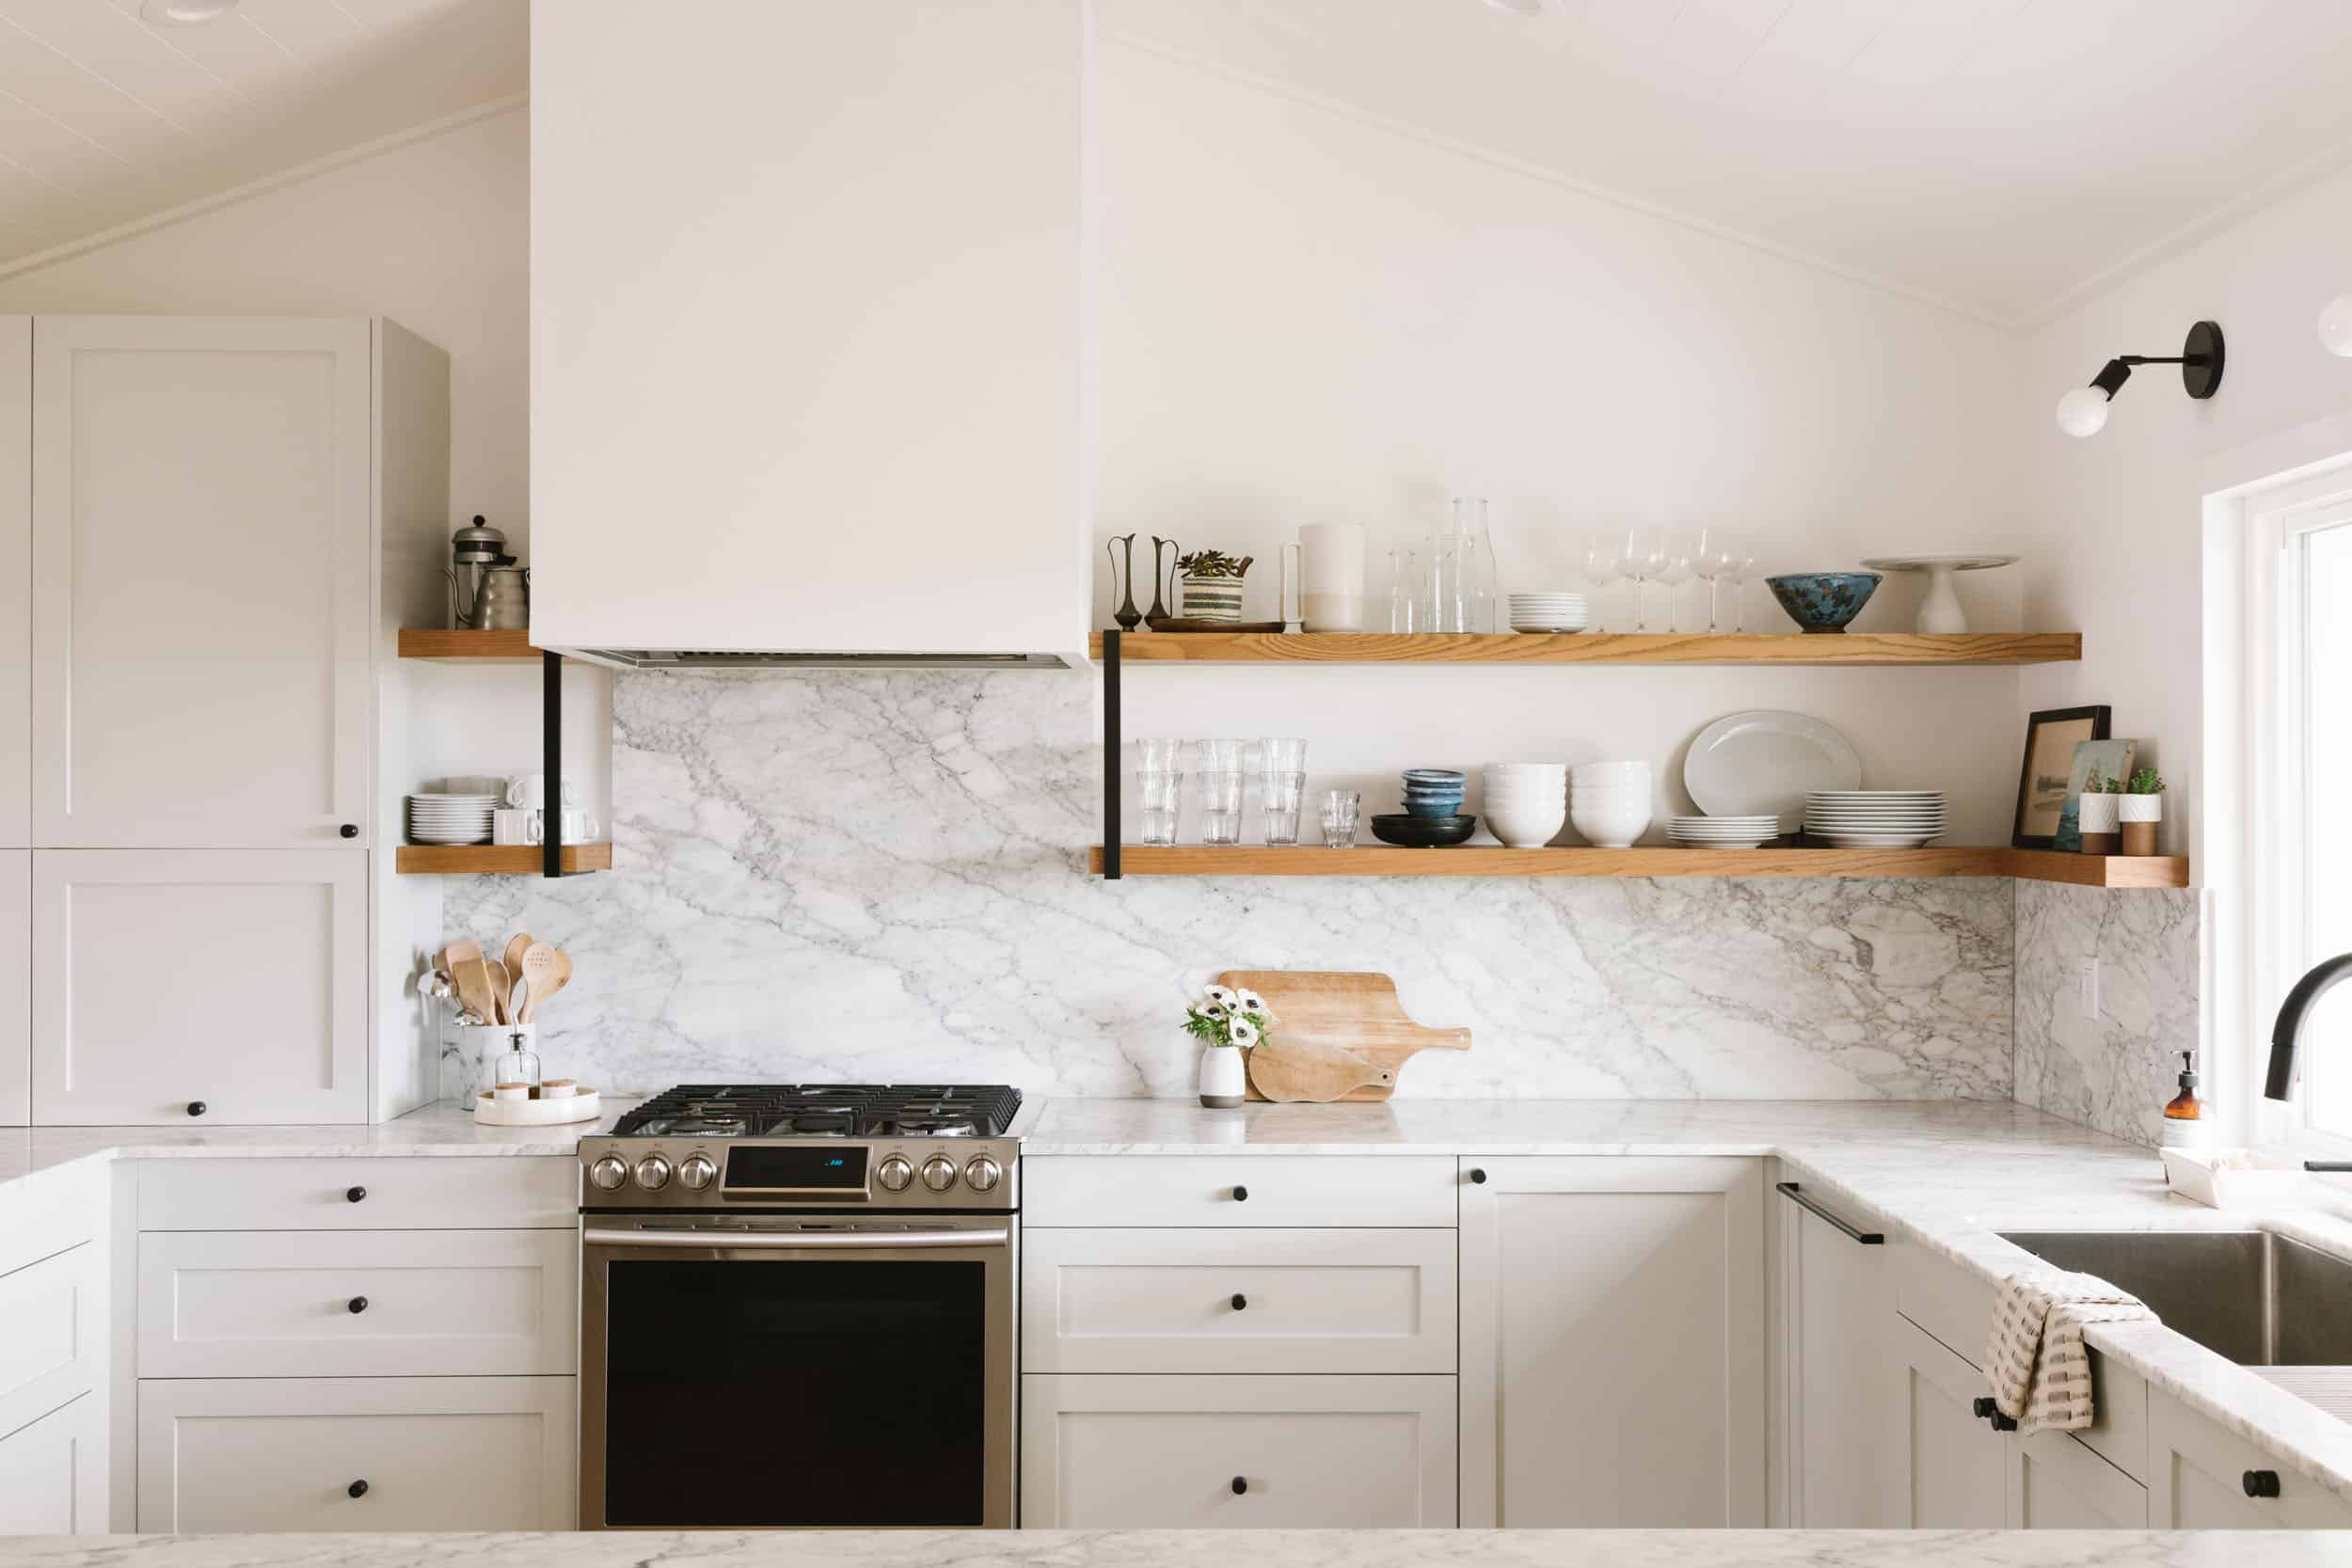 Samantha Gluck Emily Henderson Kitchen Marble Backsplash